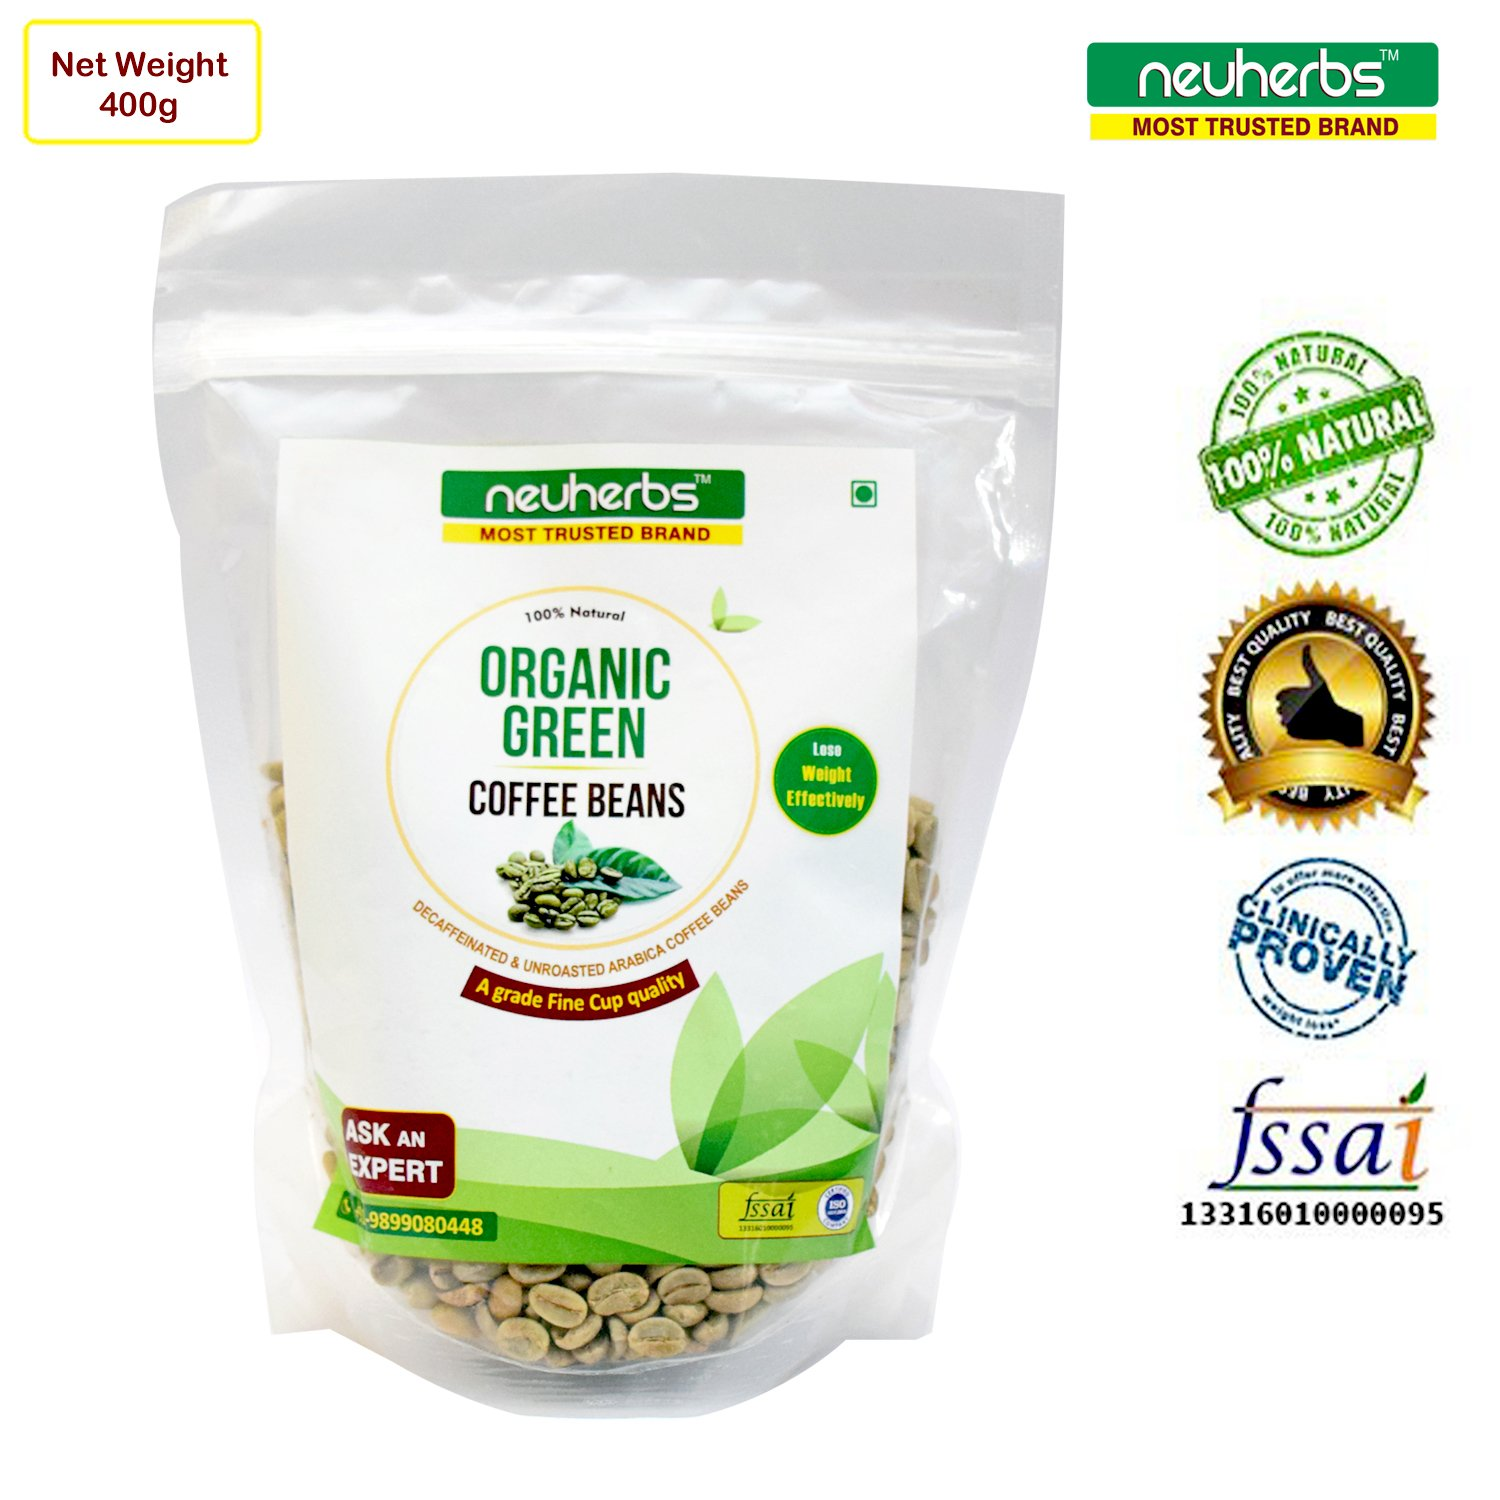 Neuherbs 100% Natural Organic Green Coffee Beans ( Decaffeinated & Unroasted Arabica Coffee ) - 400g